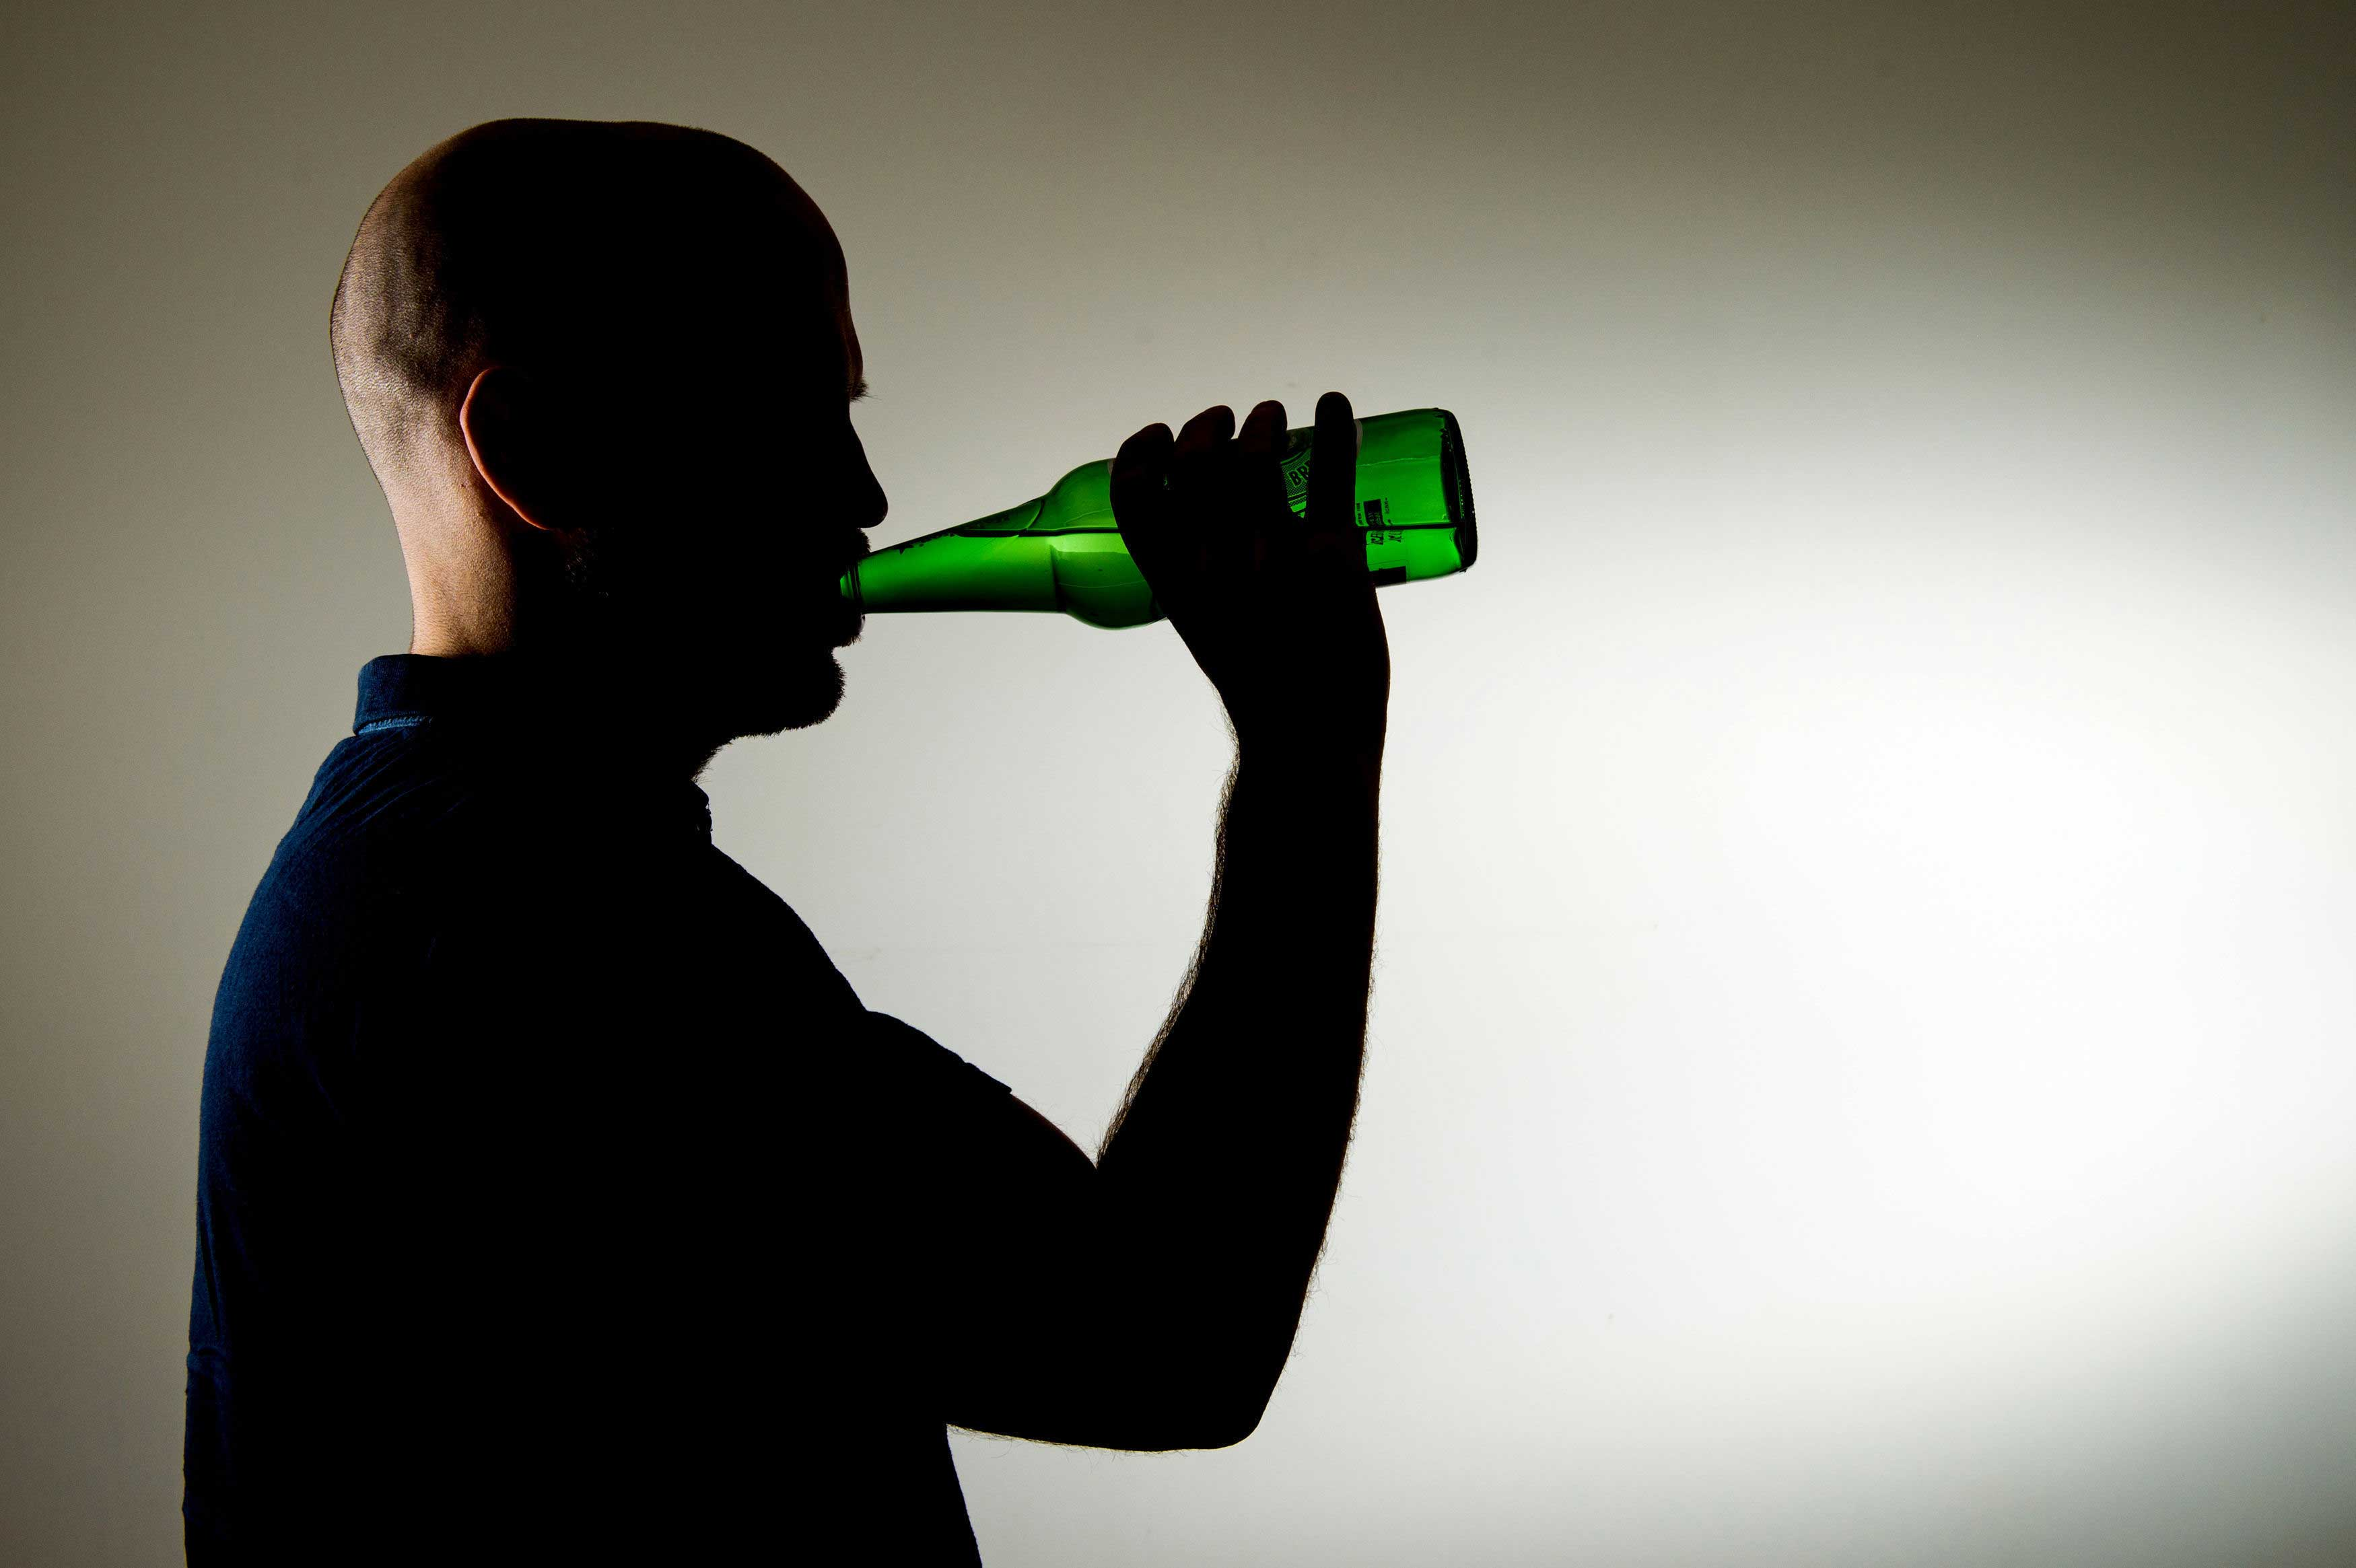 Just five alcoholic drinks a week could shorten your life, study says